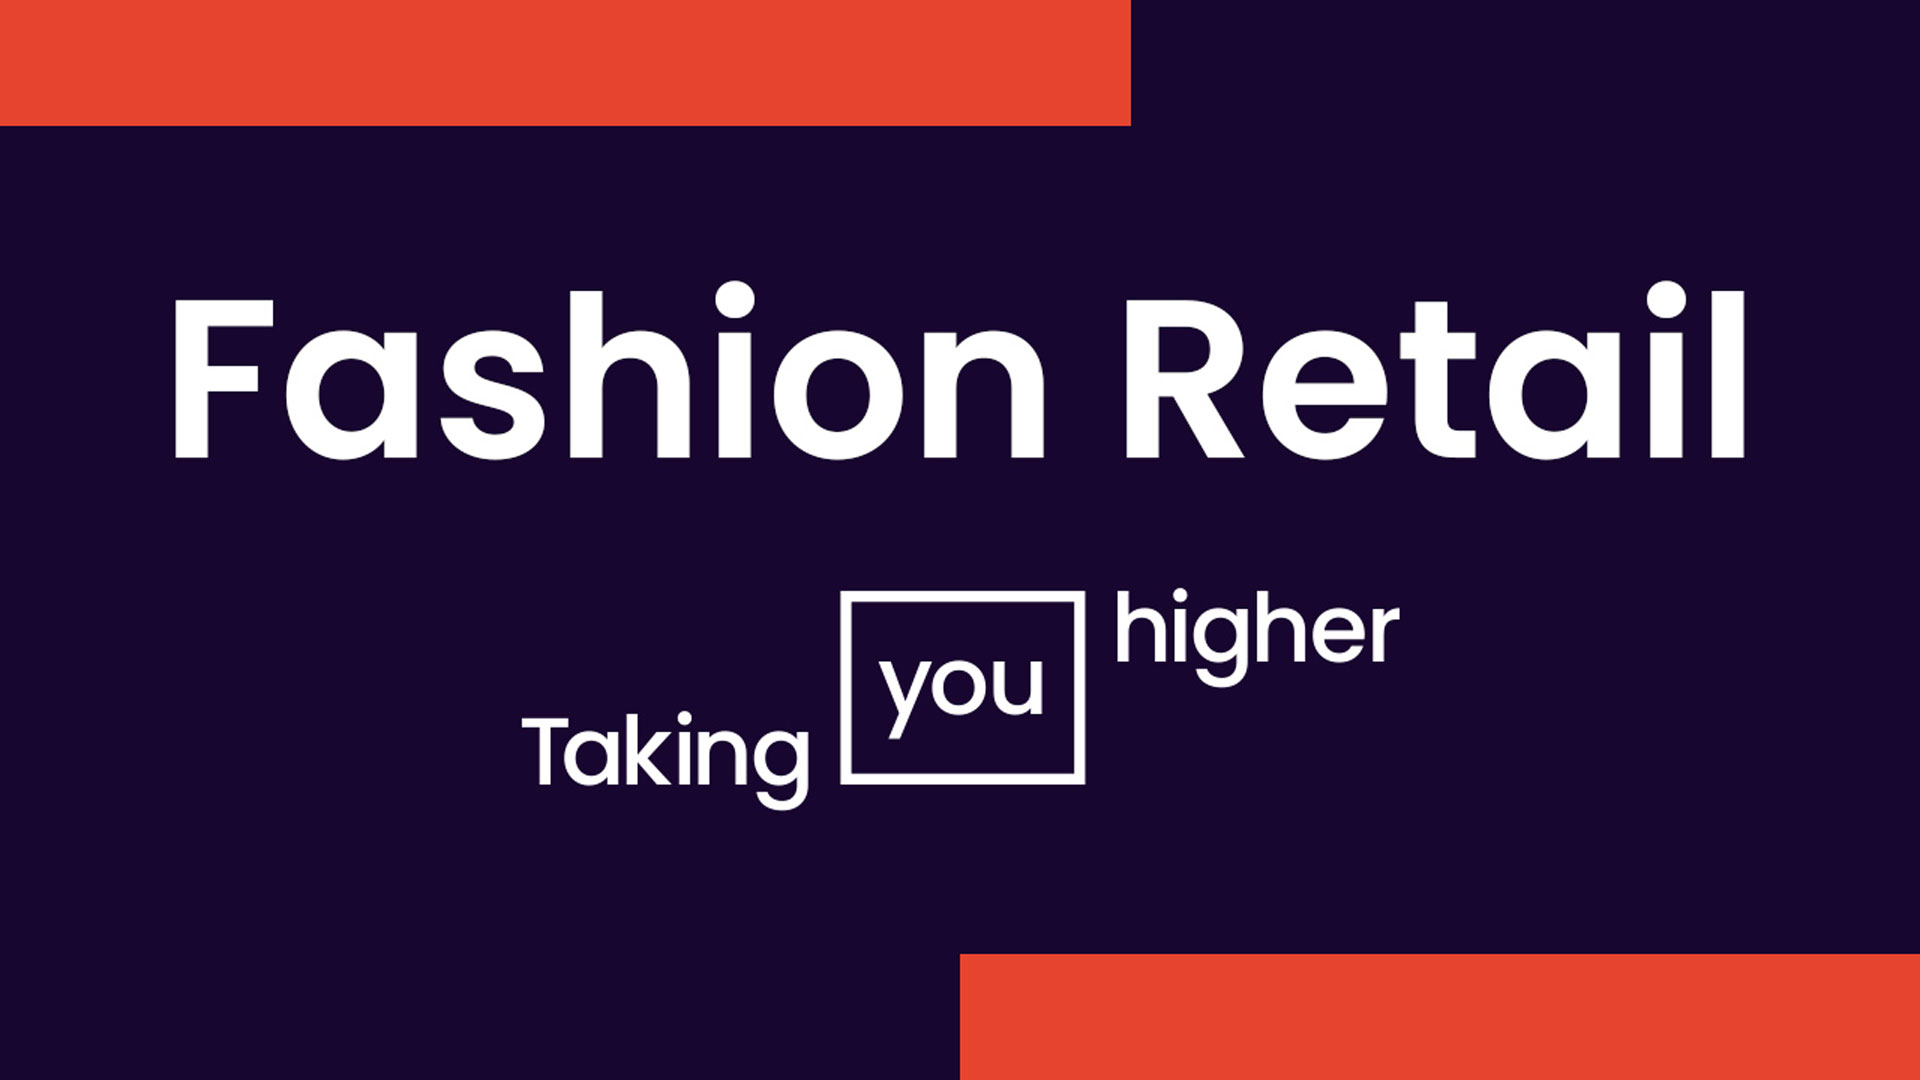 Middlesbrough College Fashion Retail Courses